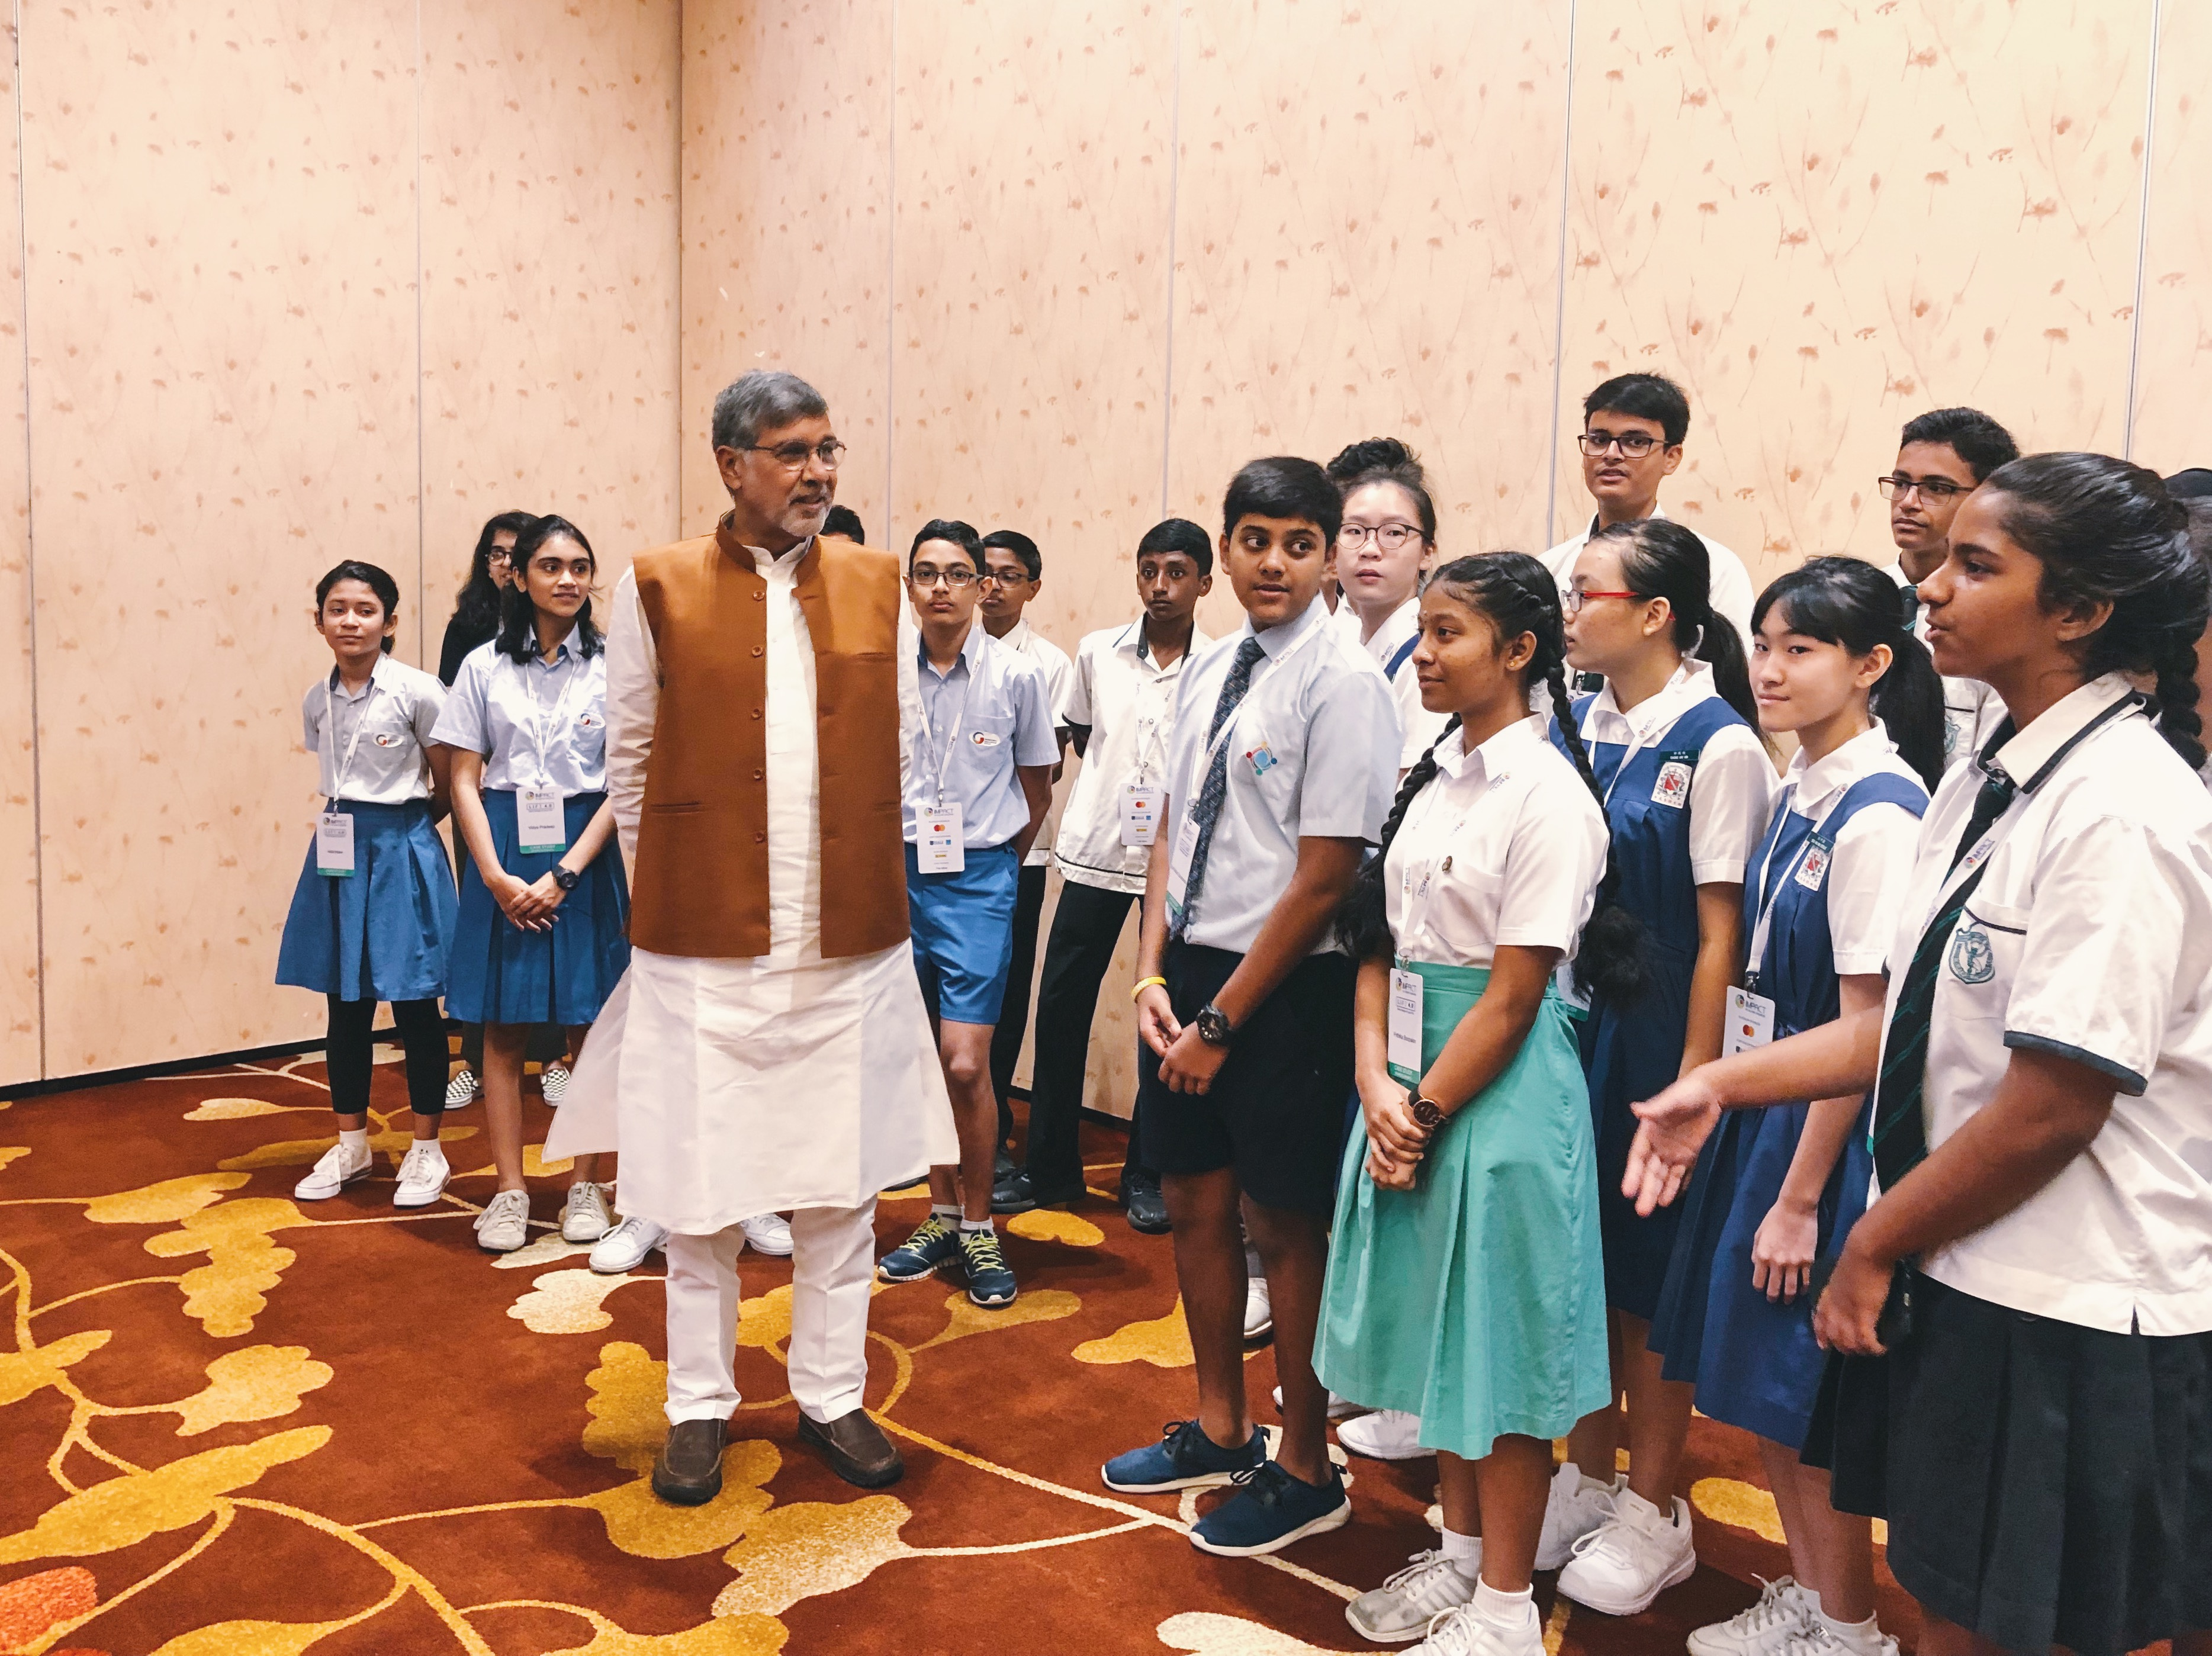 Kailash Satyarthi interacting with Singapore schoolchildren. Photo courtesy: Connected to India